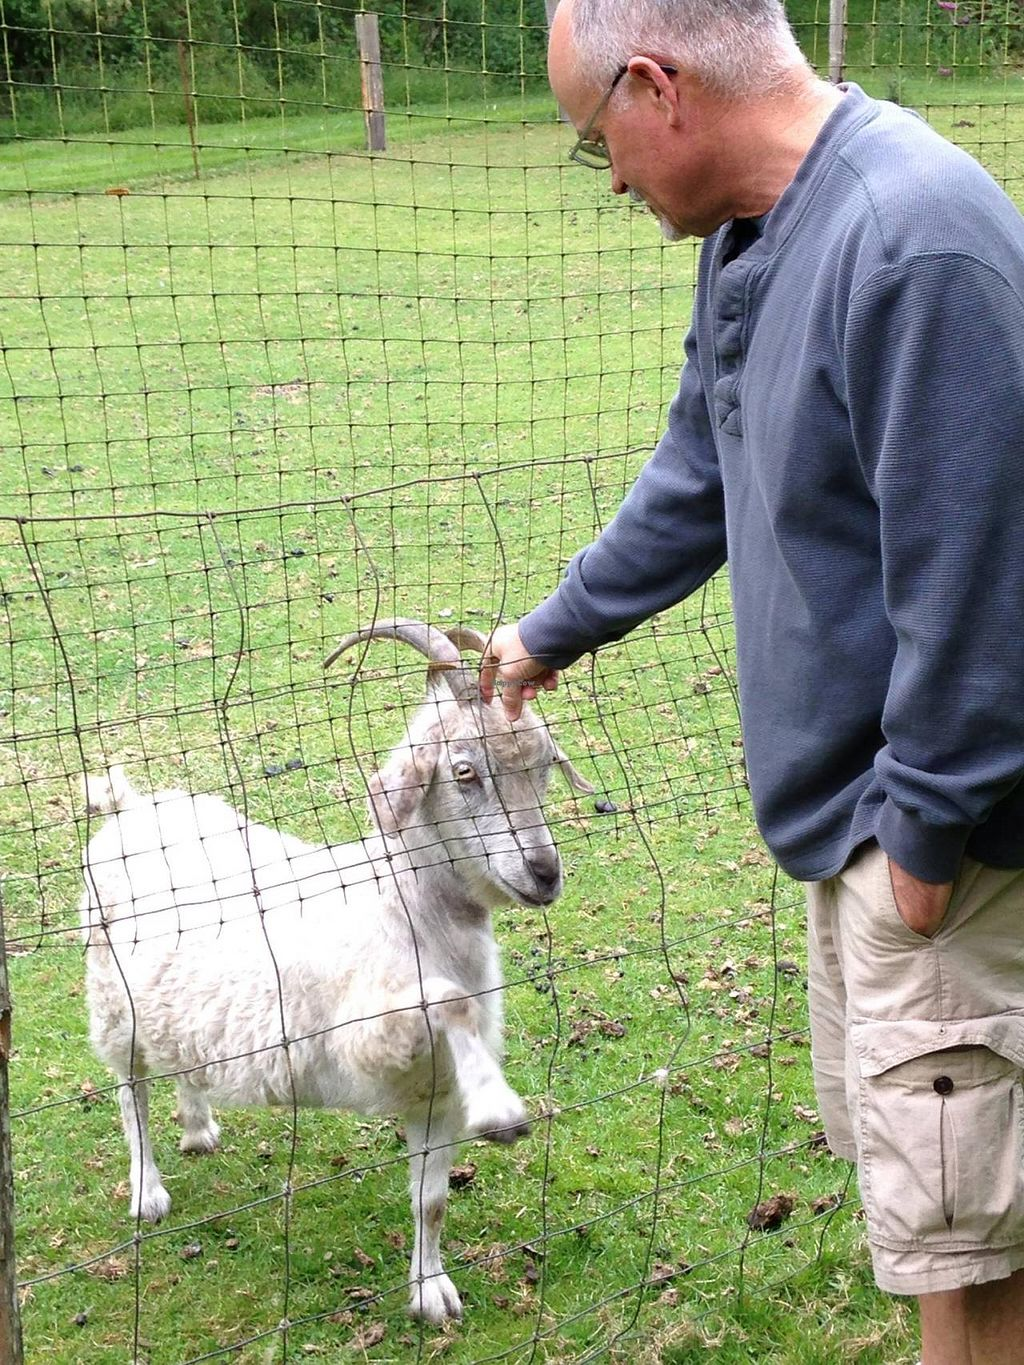 """Photo of Someday Farm Vegan Bed and Breakfast  by <a href=""""/members/profile/BethanyDavis"""">BethanyDavis</a> <br/>'Could you, would you, with a goat?'  'YES!  Pet me please!!!' <br/> August 3, 2014  - <a href='/contact/abuse/image/30230/75903'>Report</a>"""